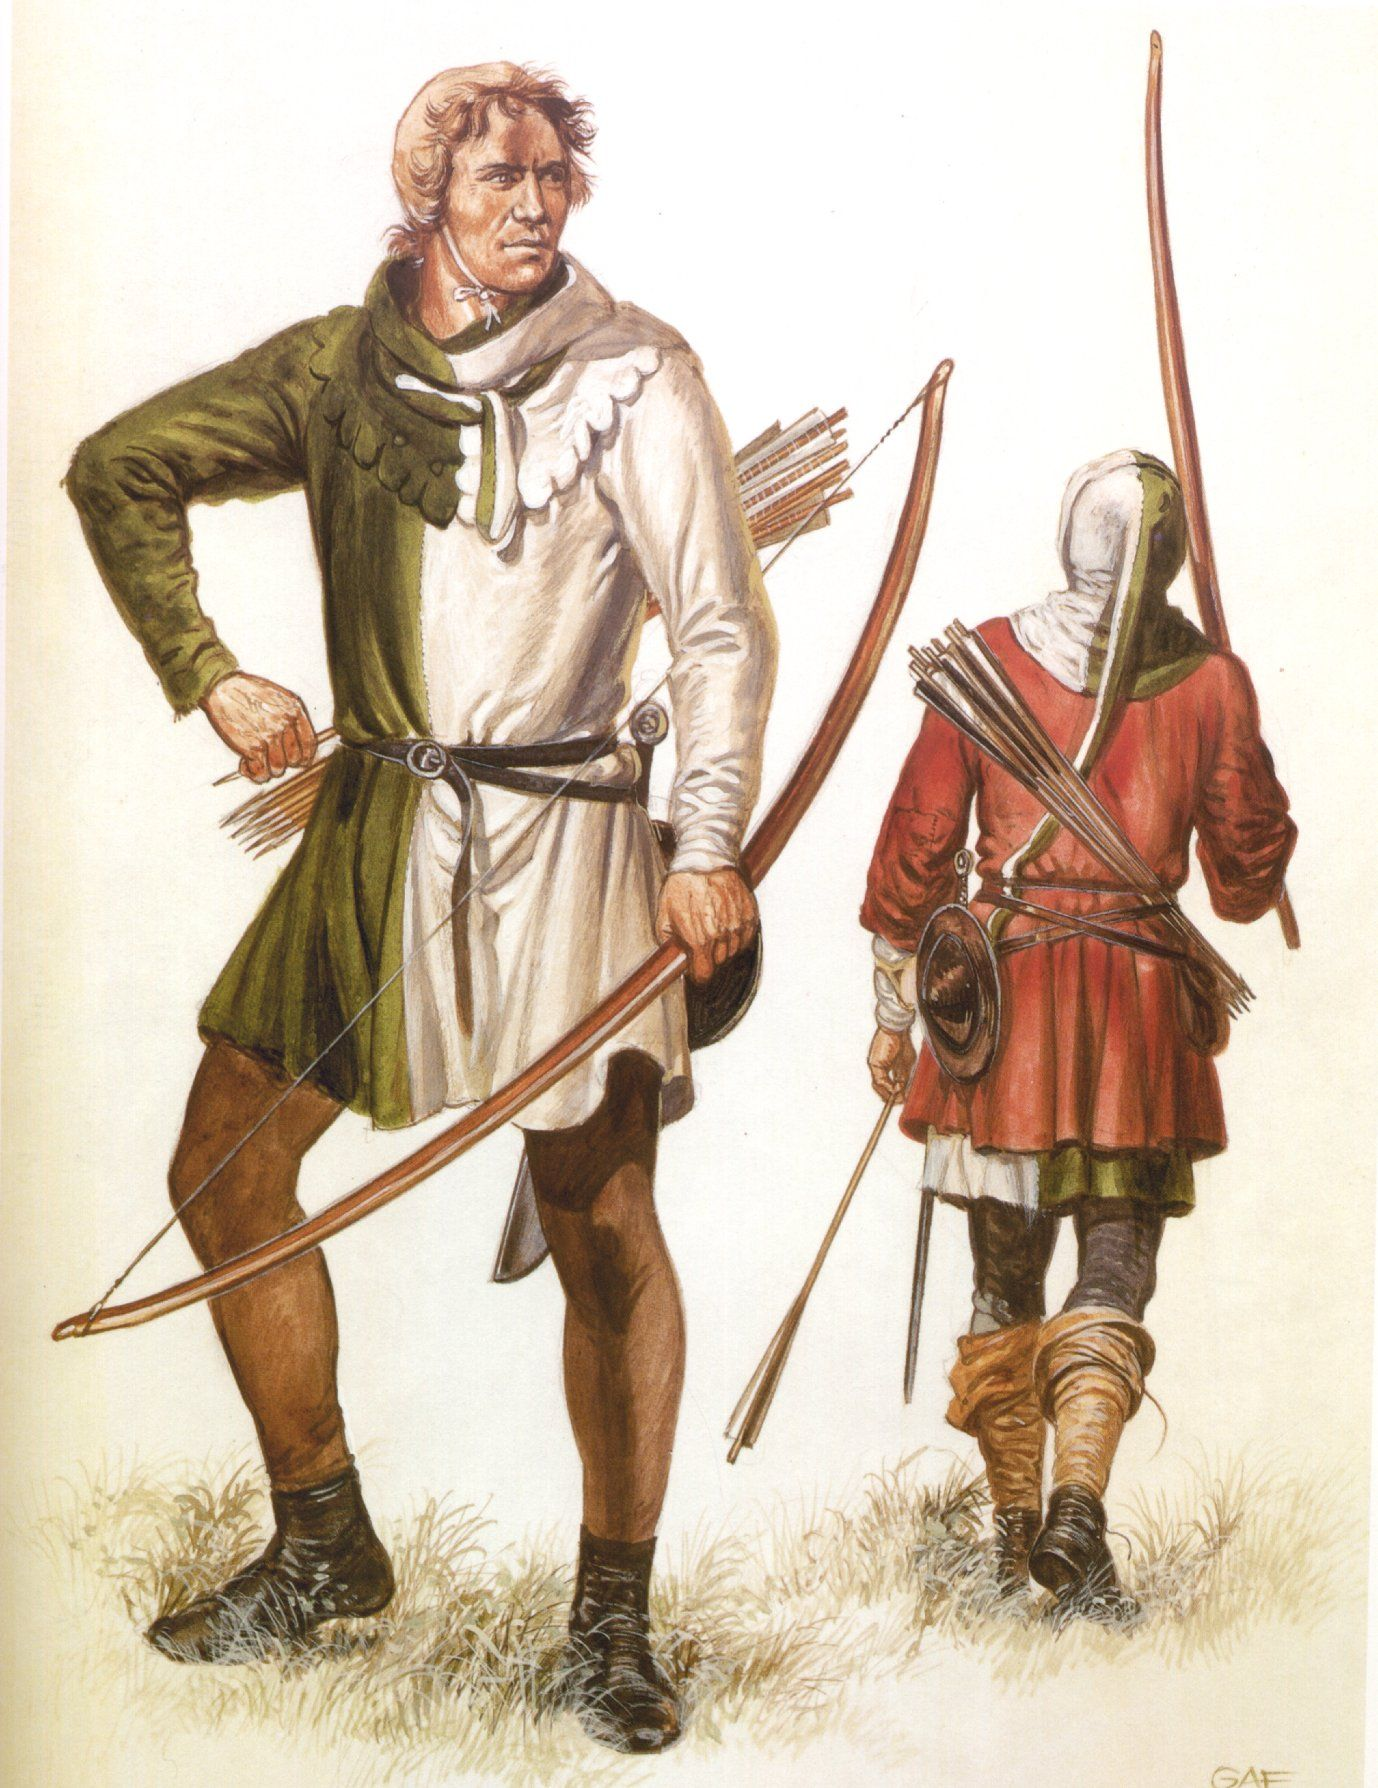 medieval archer hood - Google Search  sc 1 st  Pinterest & medieval archer hood - Google Search | Medieval and 100 Years War ...